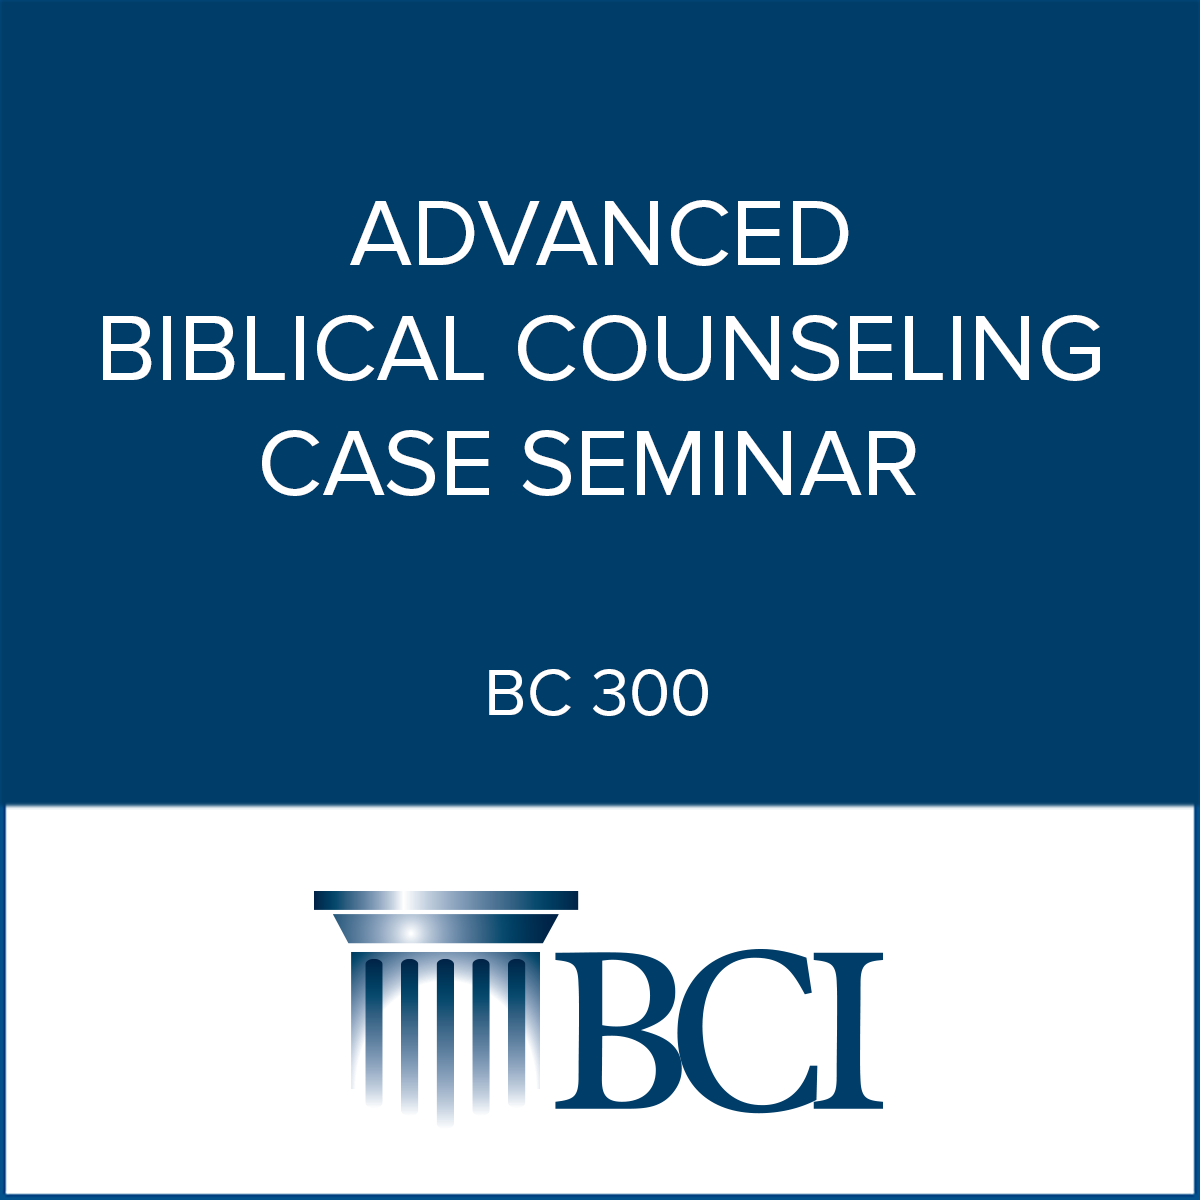 Advanced Biblical Counseling Case Seminar